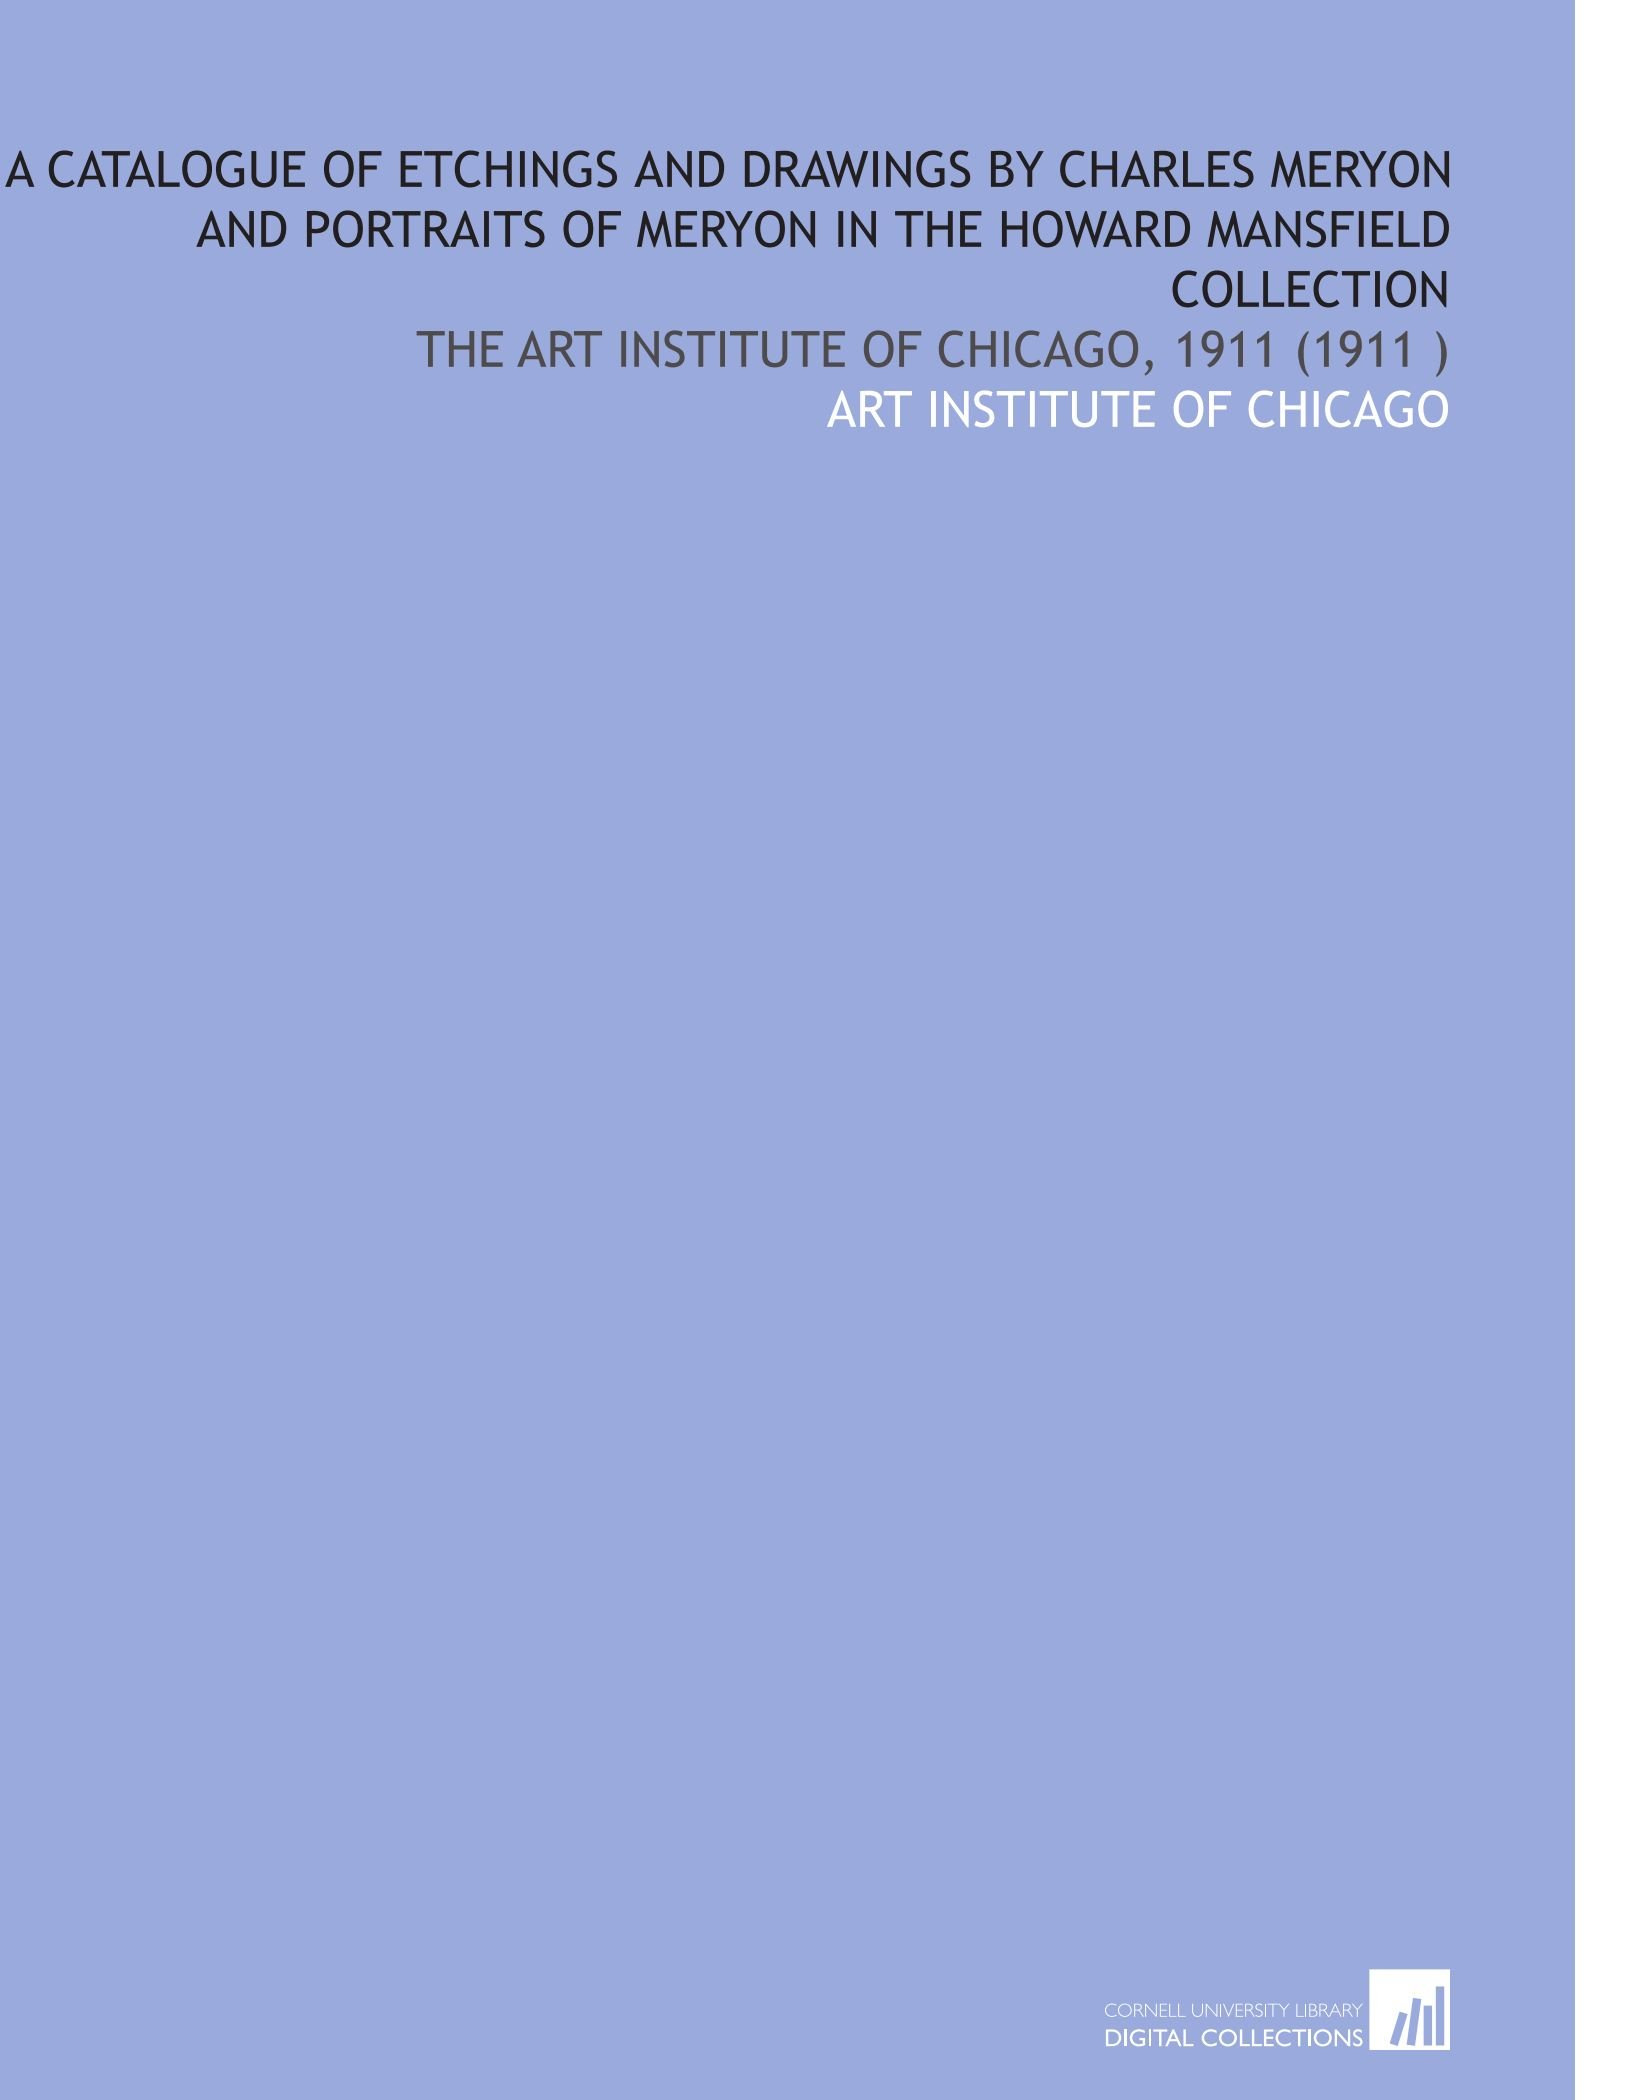 Download A Catalogue of Etchings and Drawings by Charles Meryon and Portraits of Meryon in the Howard Mansfield Collection: The Art Institute of Chicago, 1911 (1911 ) PDF